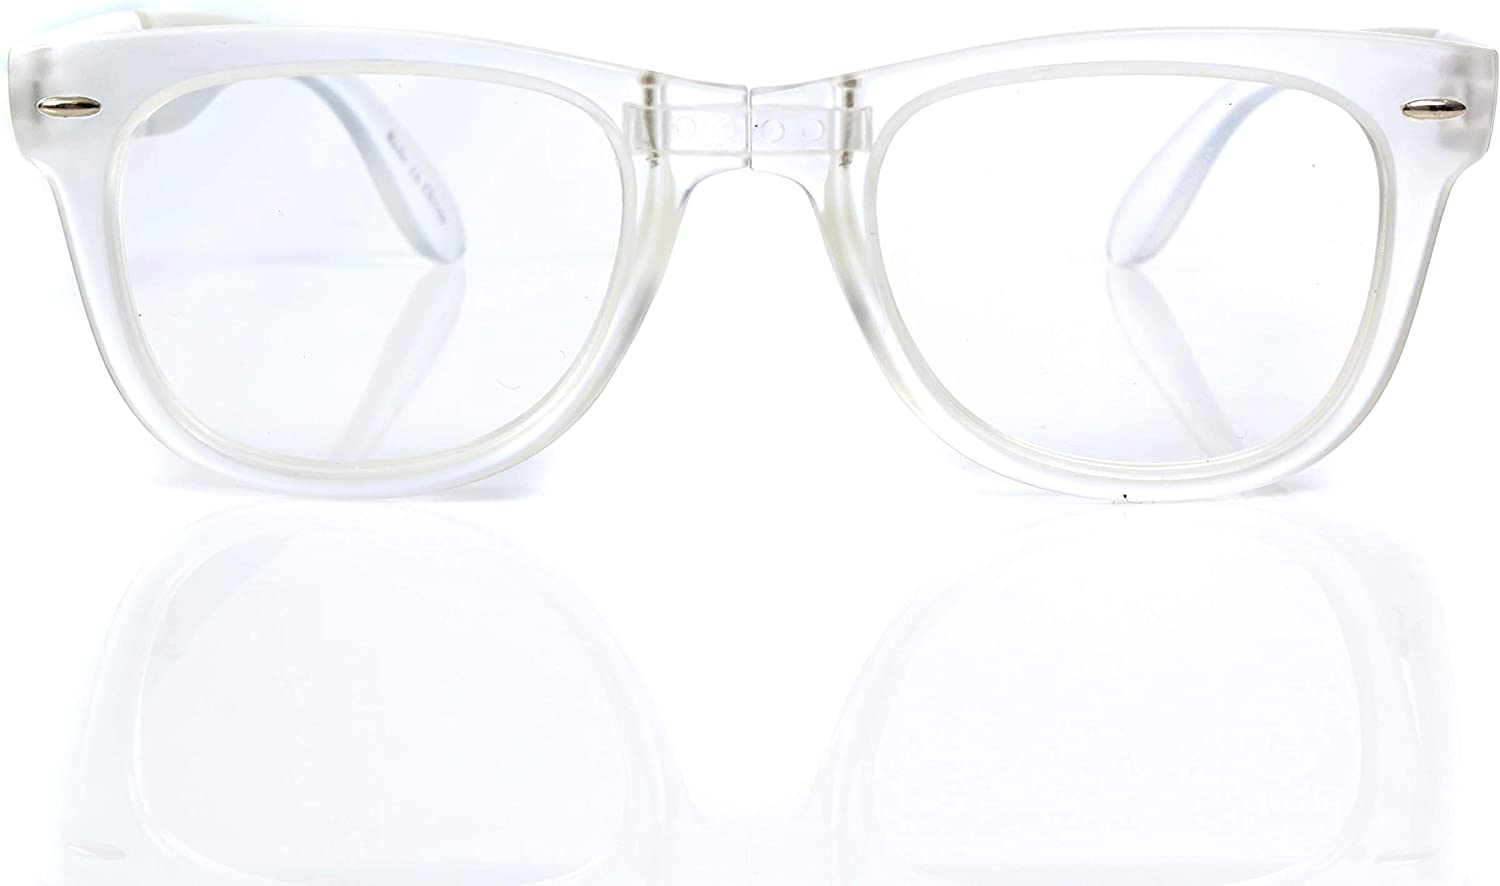 Premium Folding Diffraction Glasses Selling and In a popularity selling Alternative By Imagination